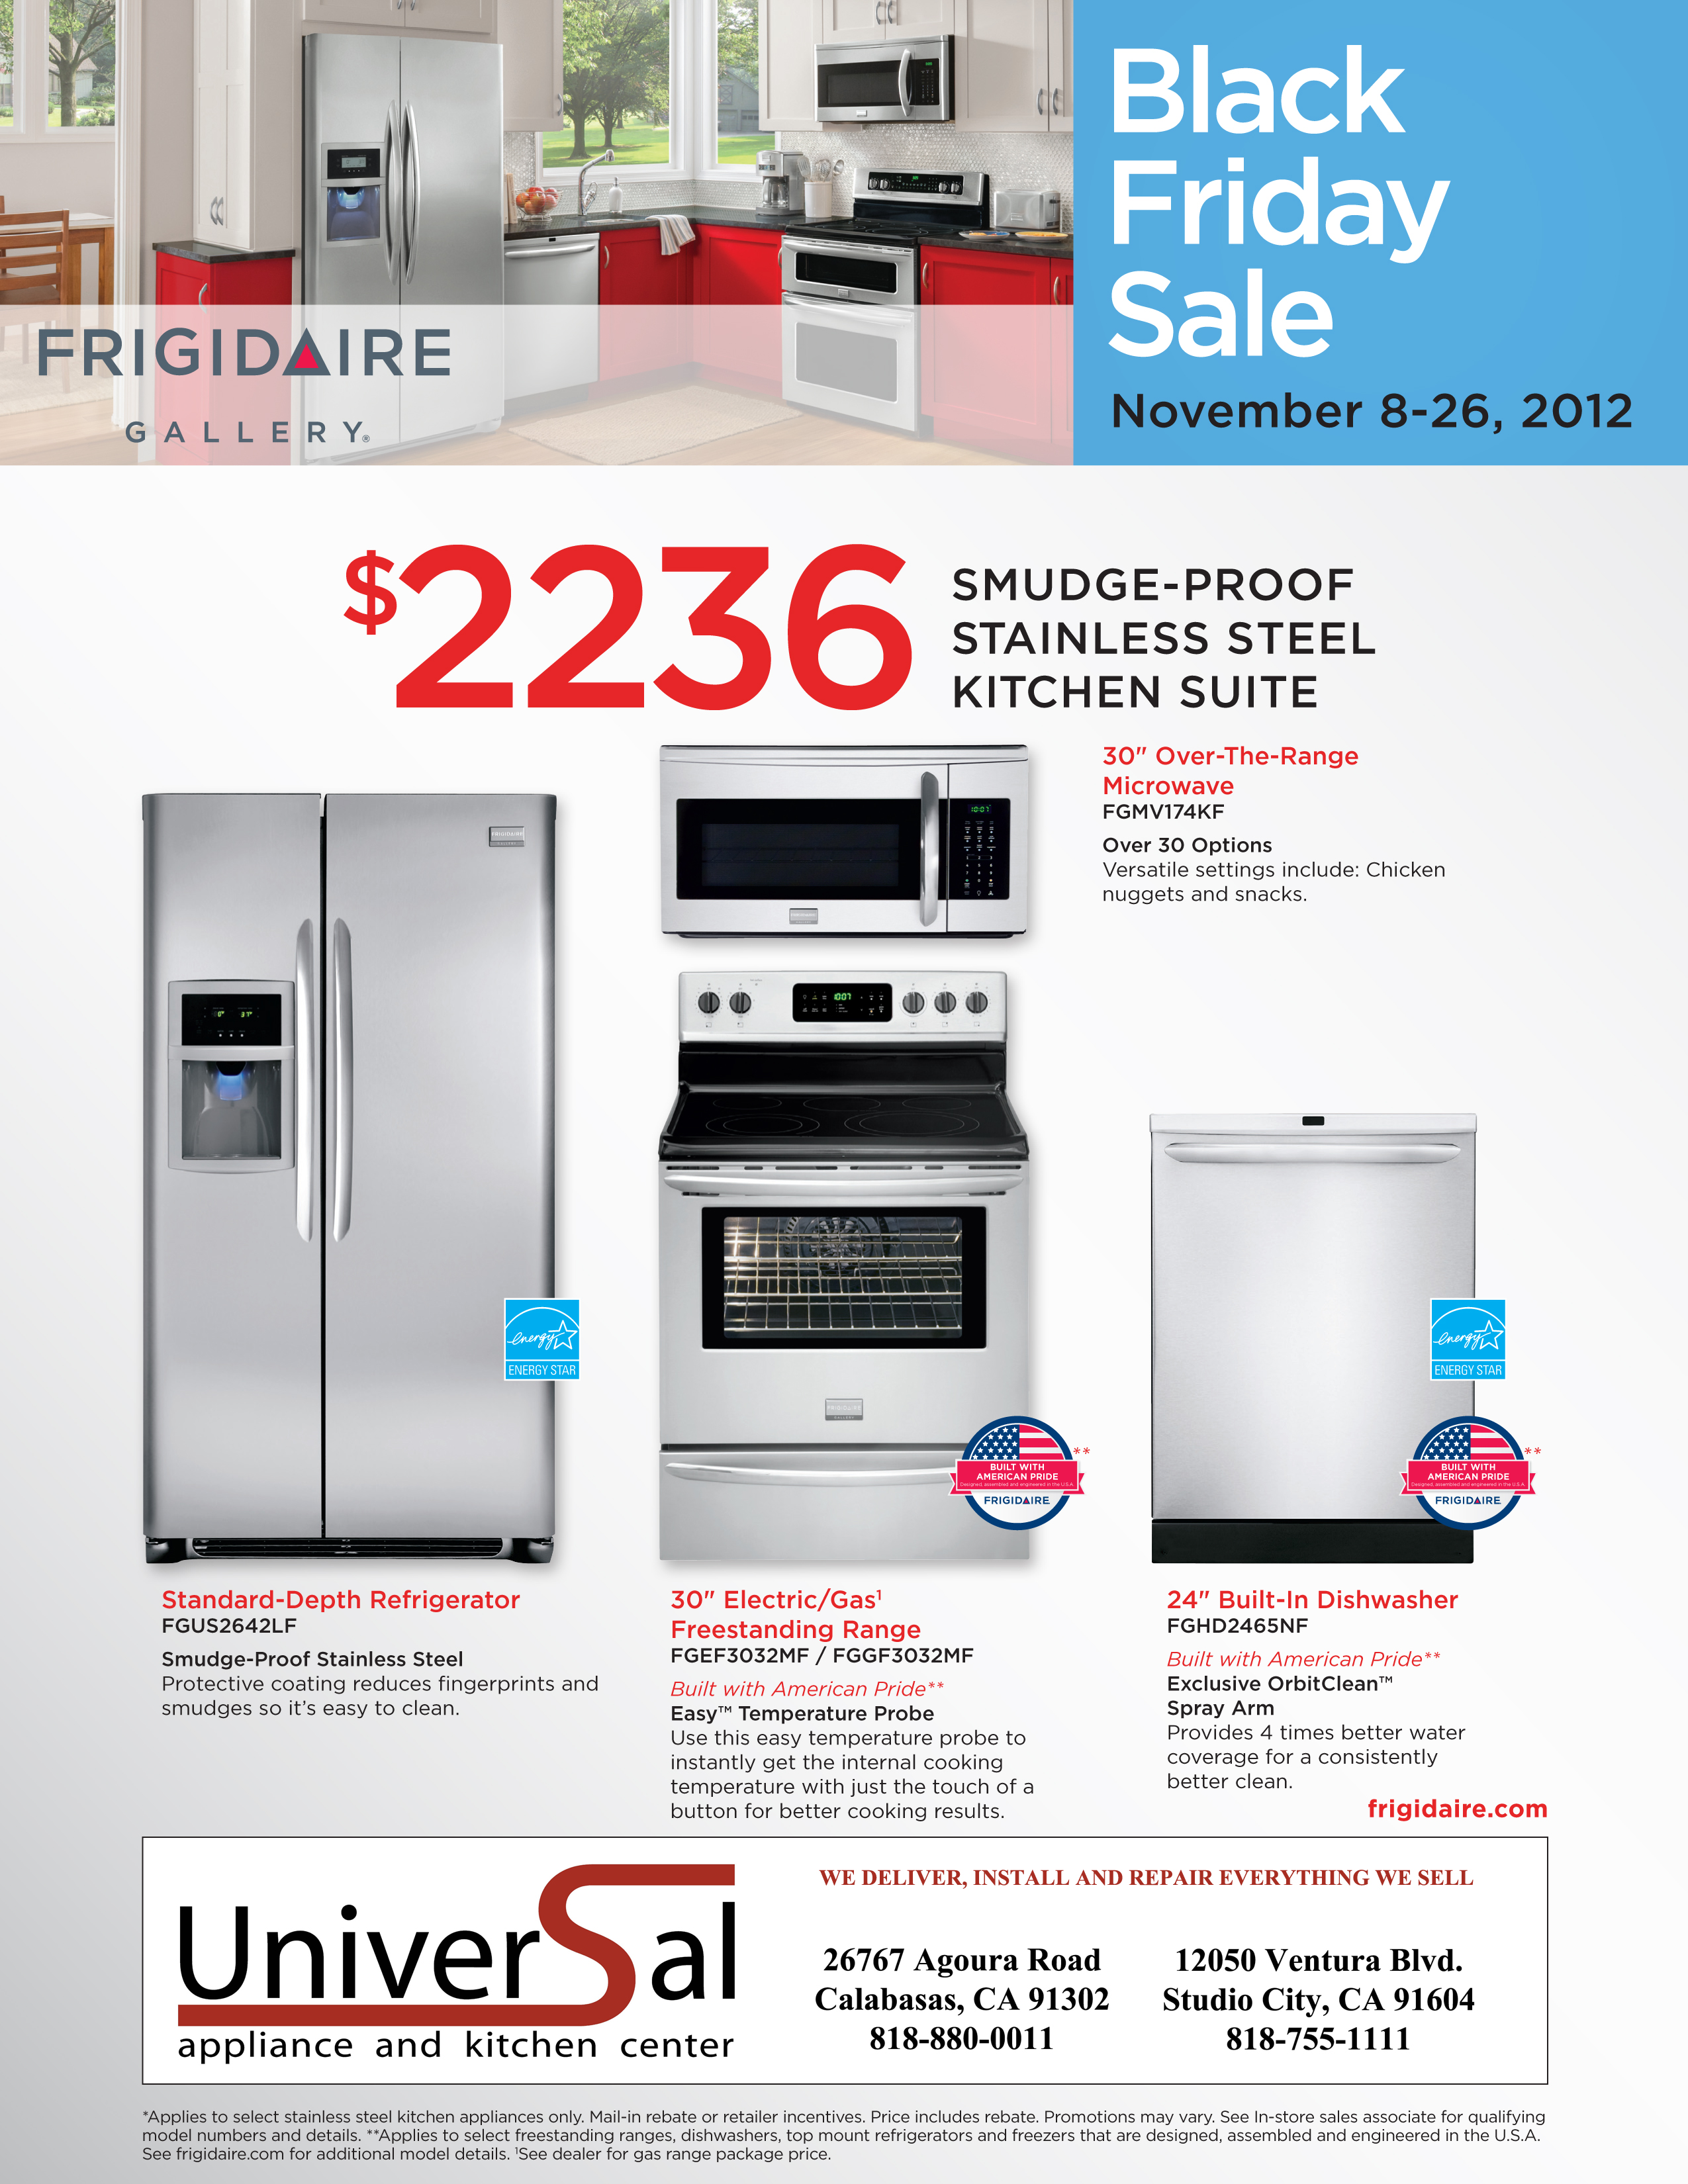 Uncategorized Black Friday Kitchen Appliances universal appliance and kitchen center blog black friday 2236 package